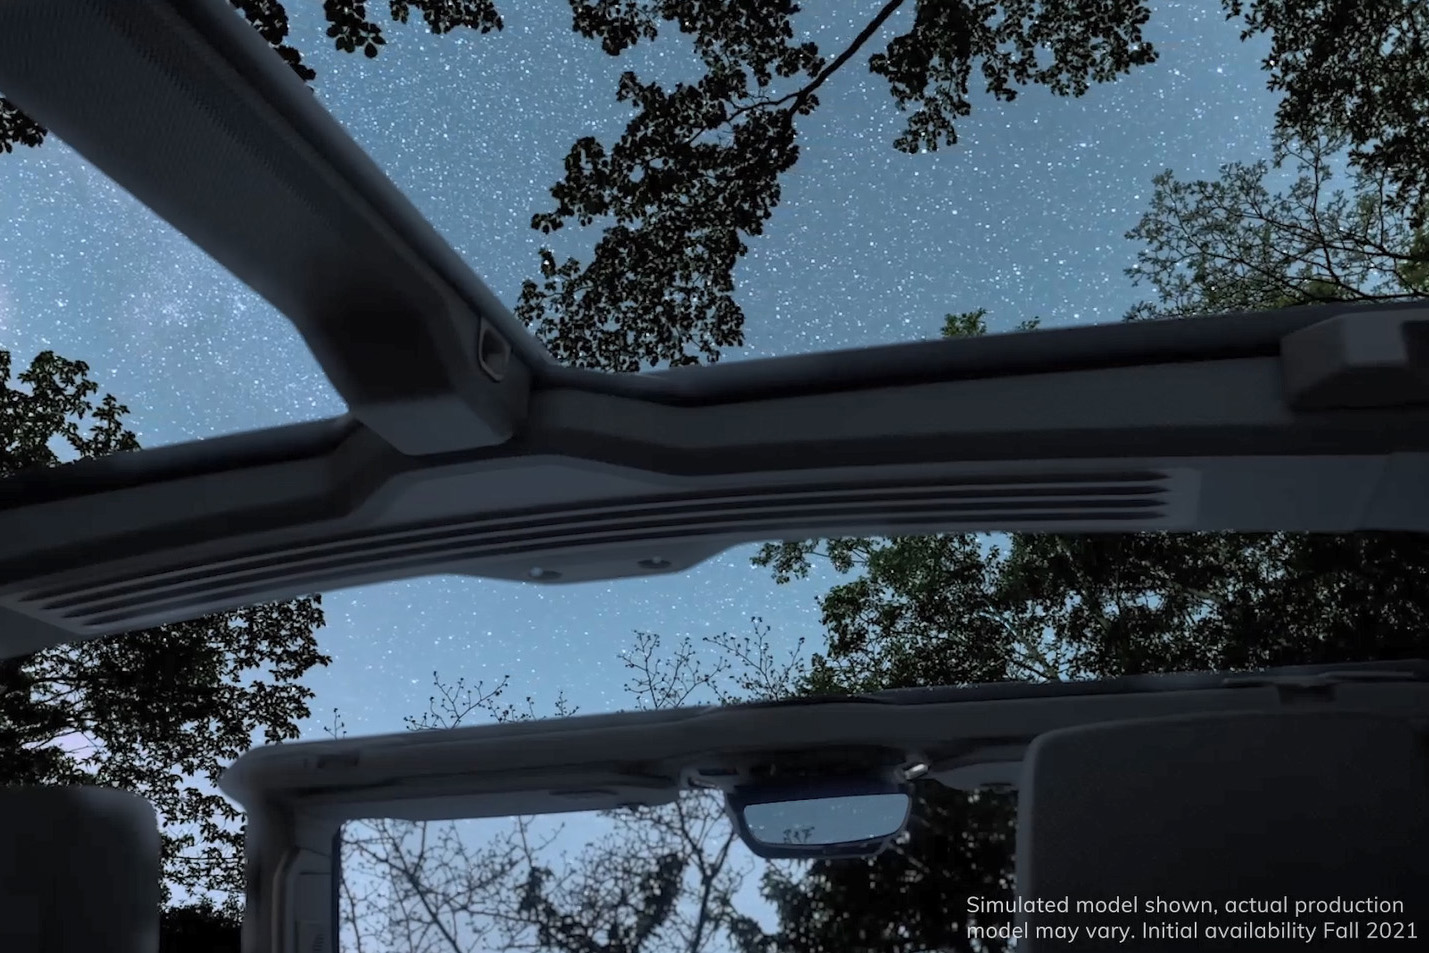 Ceiling the Deal: GMC's Hummer Electric Truck to Feature Removable Roof Panels